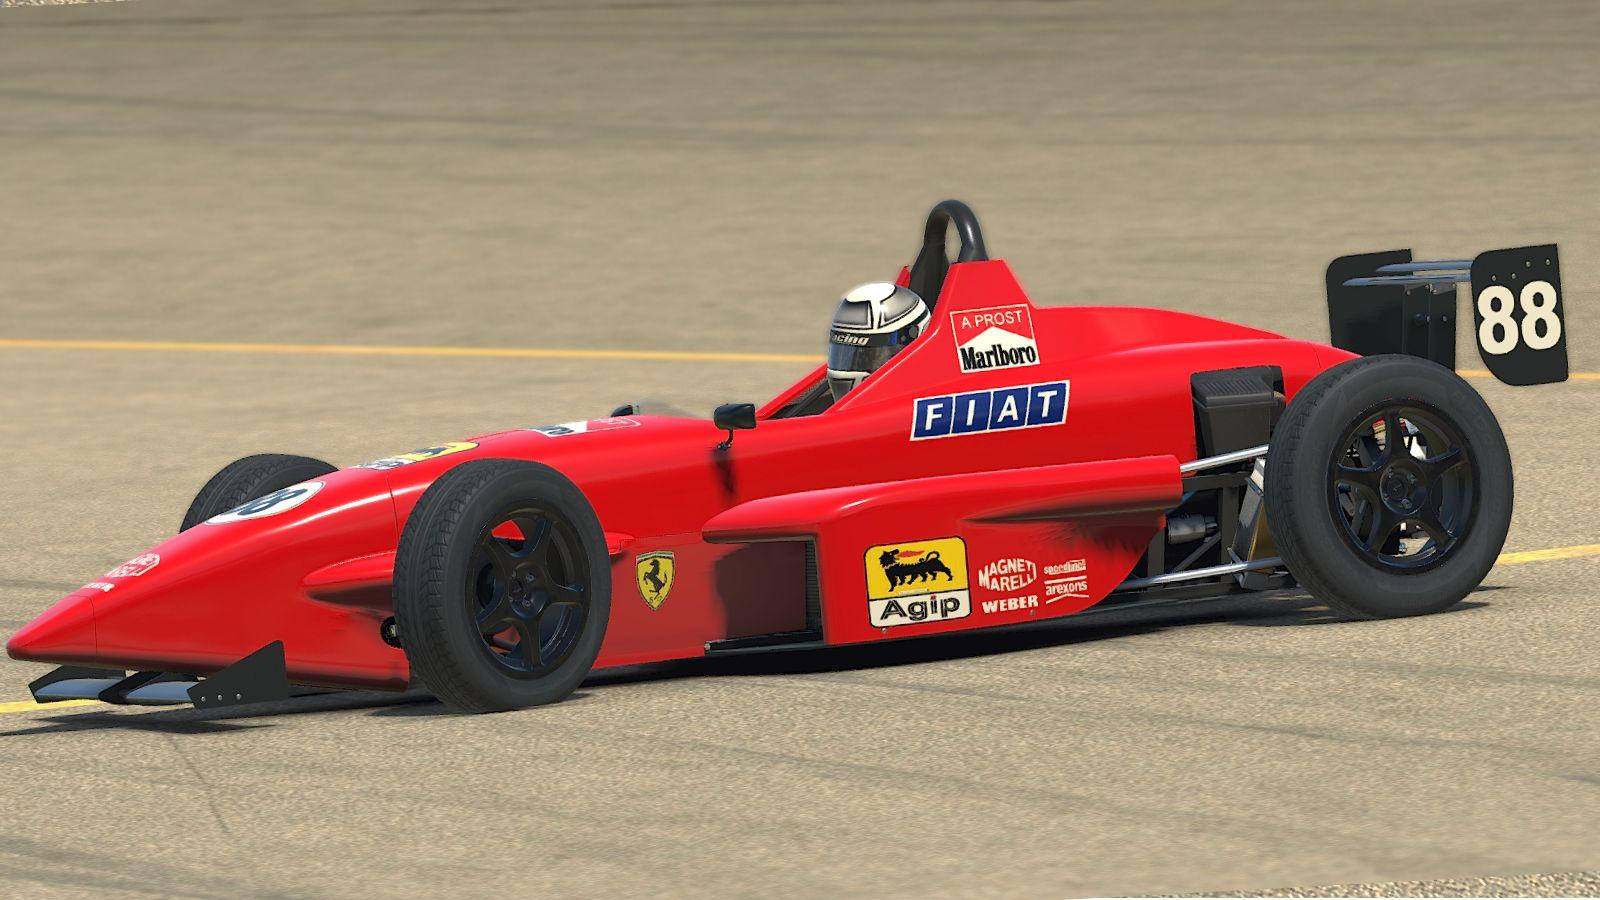 Preview of 1990 A Prost ferrari Formula Skip Barber  by Stephane Parent